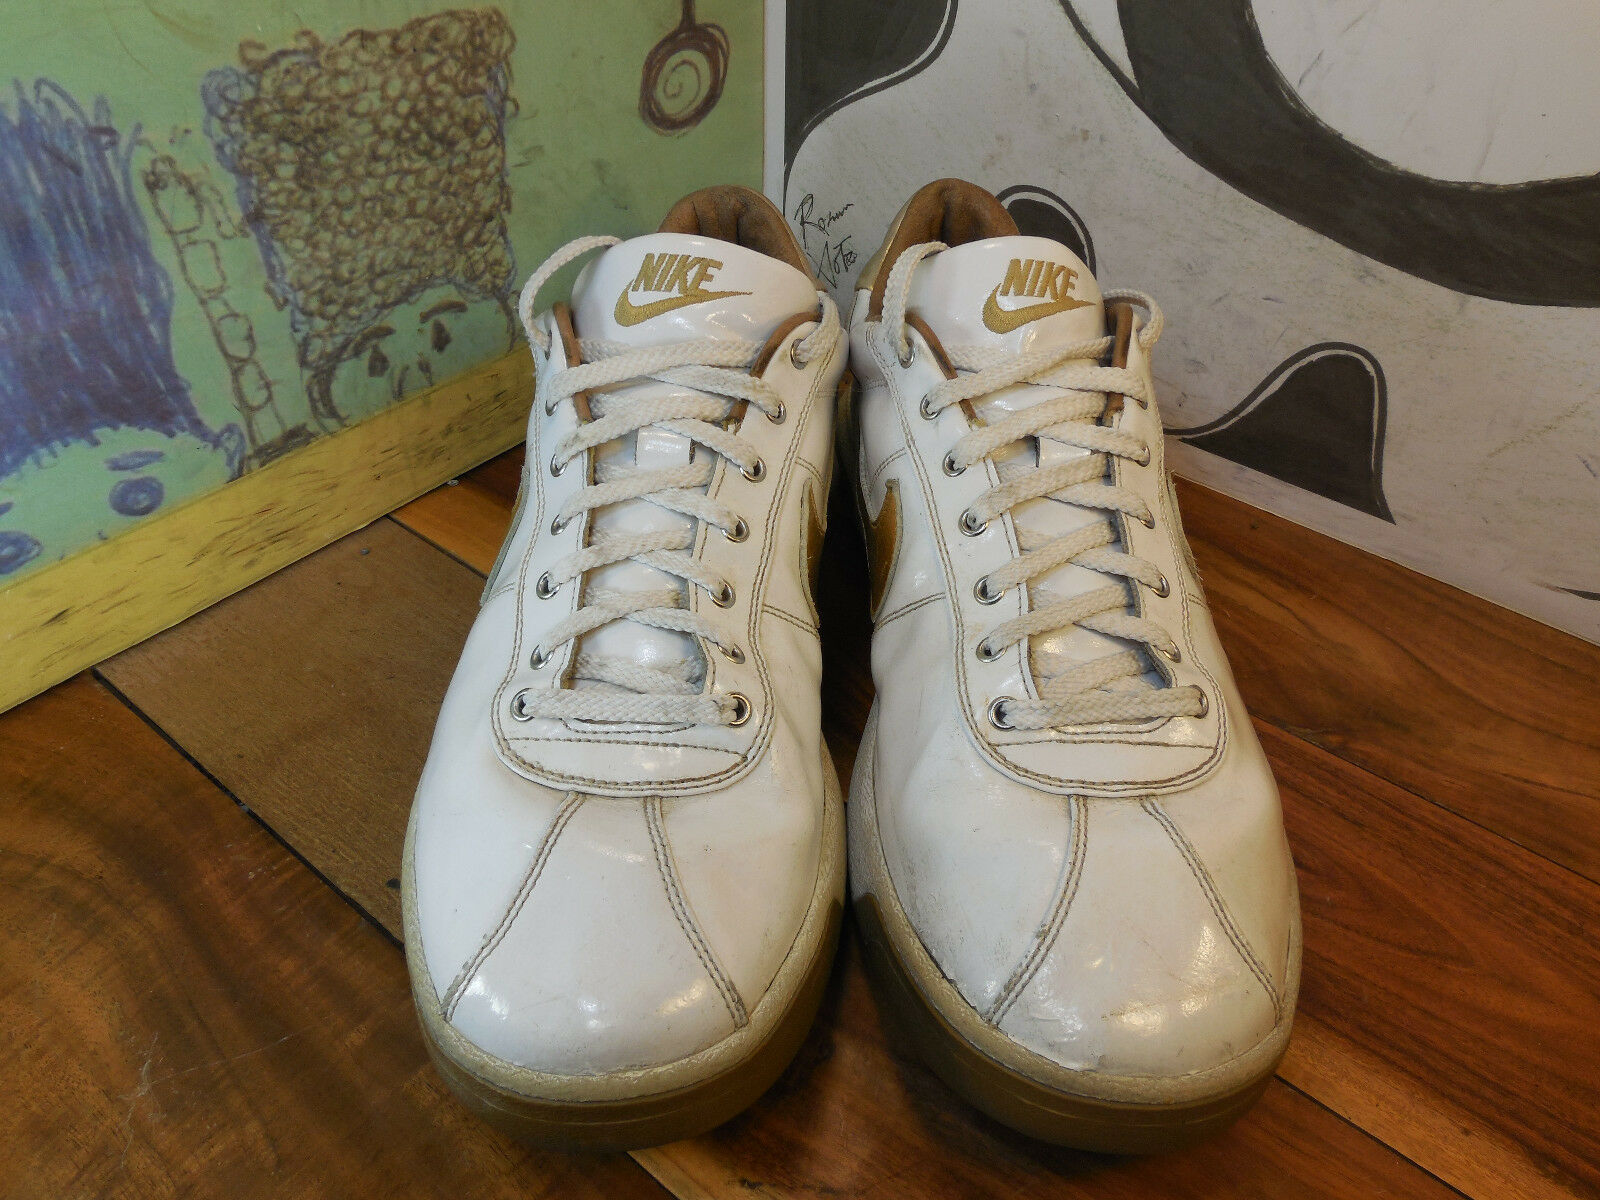 check out 90d78 5c82d ... Nike White Leather Leather Leather Gold Swoosh Sneakers Mens 16  316166-991 Individually Designed 78e216 ...